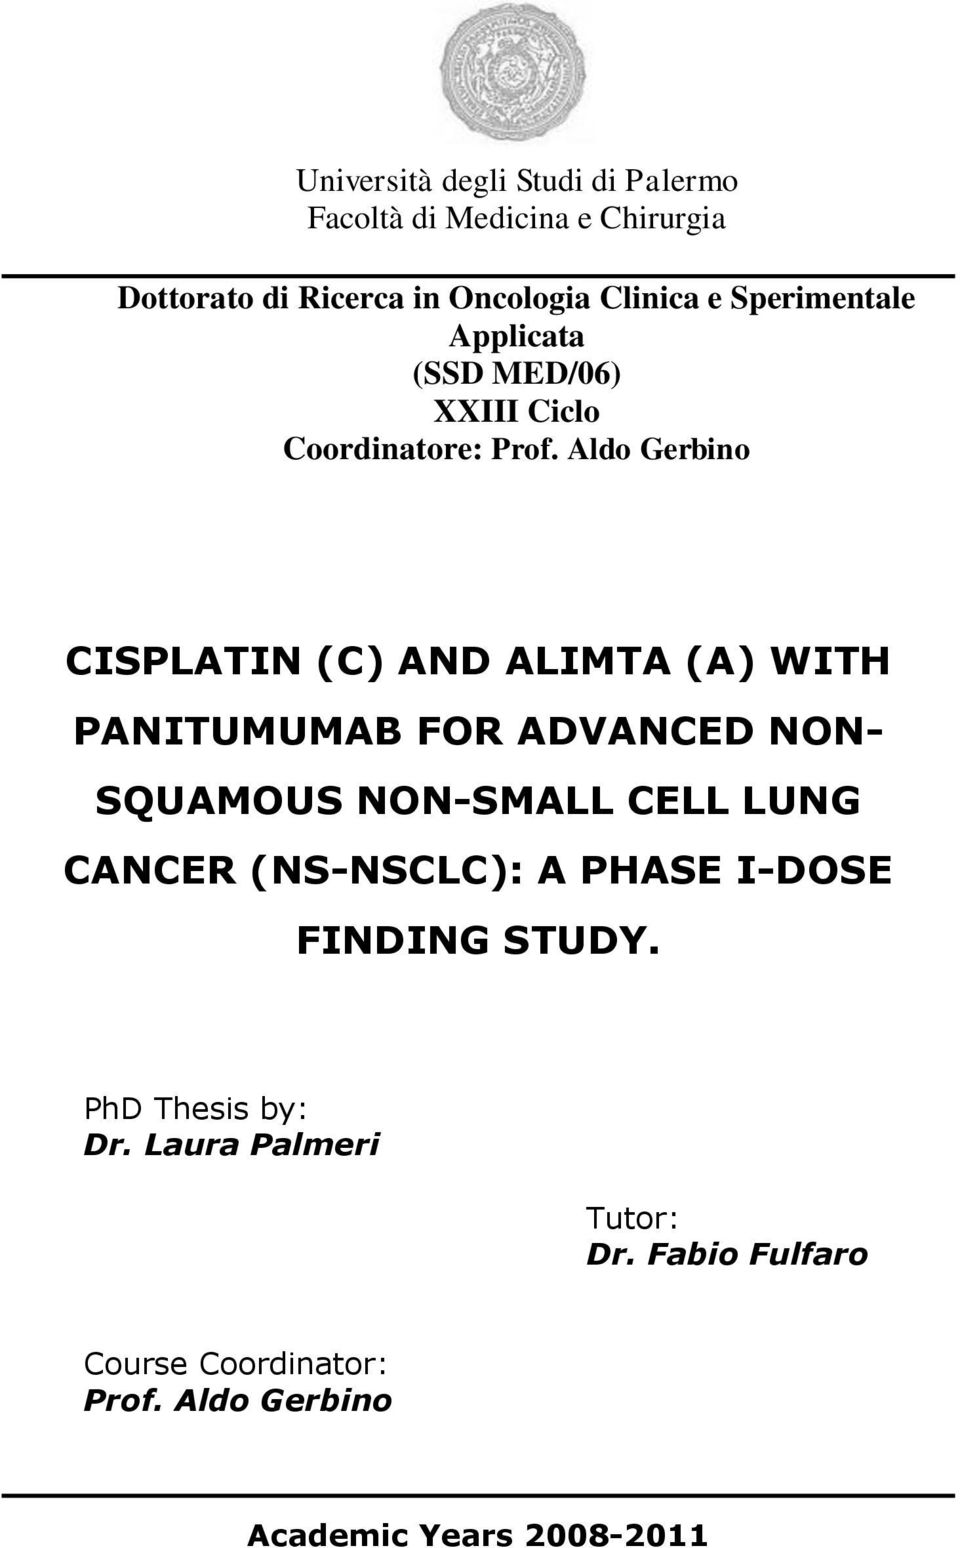 Aldo Gerbino CISPLATIN (C) AND ALIMTA (A) WITH PANITUMUMAB FOR ADVANCED NON- SQUAMOUS NON-SMALL CELL LUNG CANCER